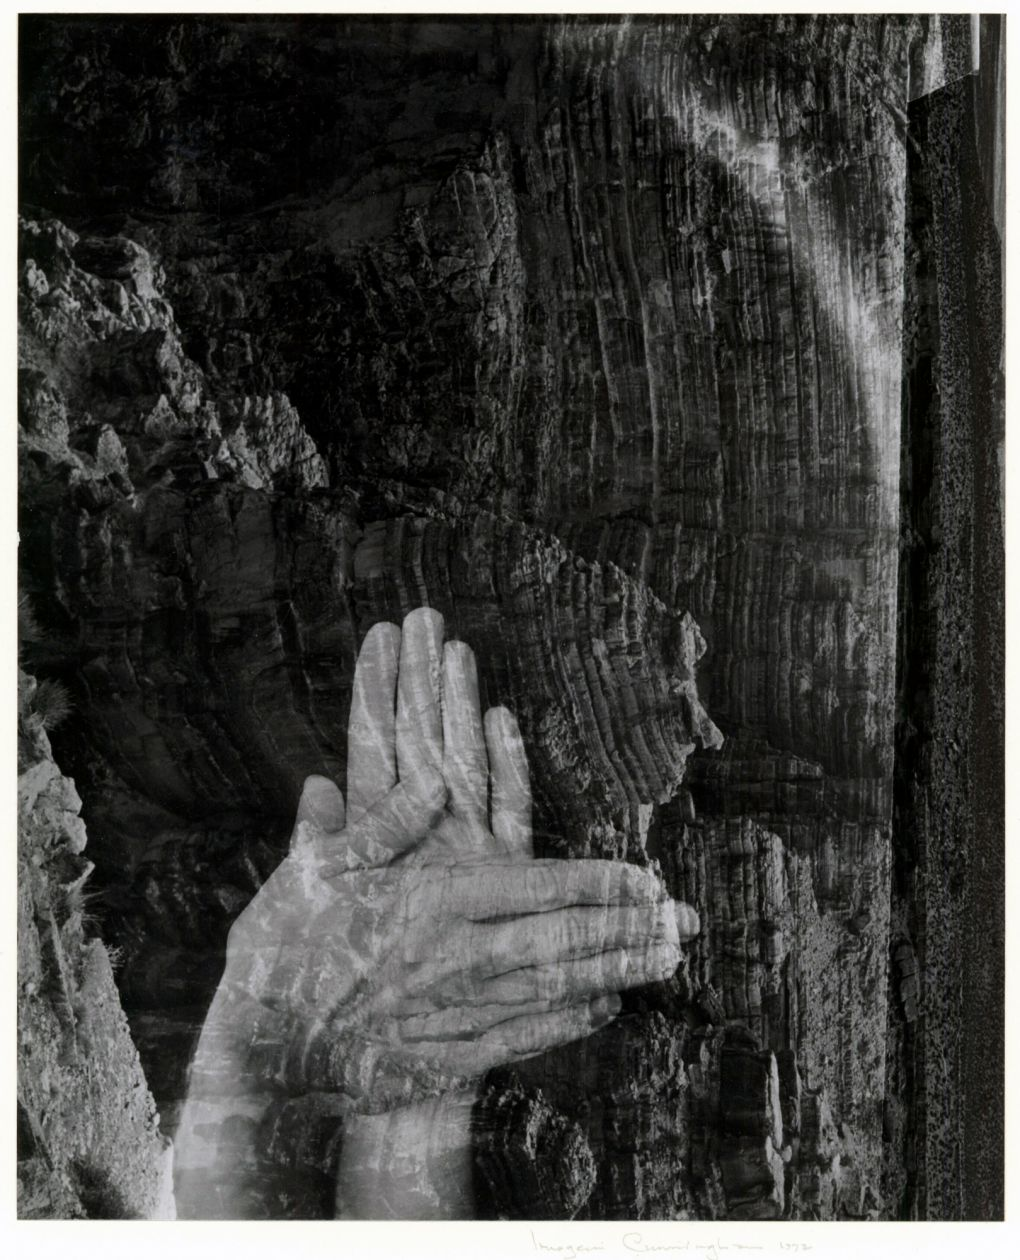 Self Portrait (hands in front of cliffs) (1972) by Imogen Cunningham